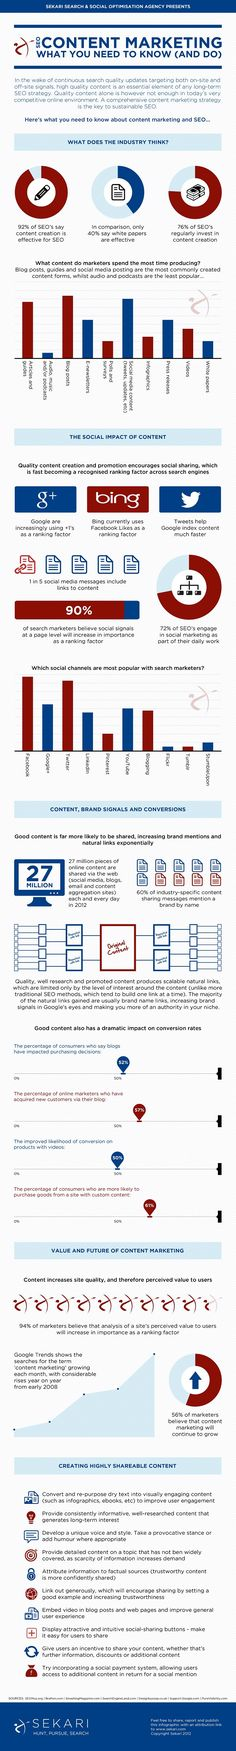 SEO and content mark